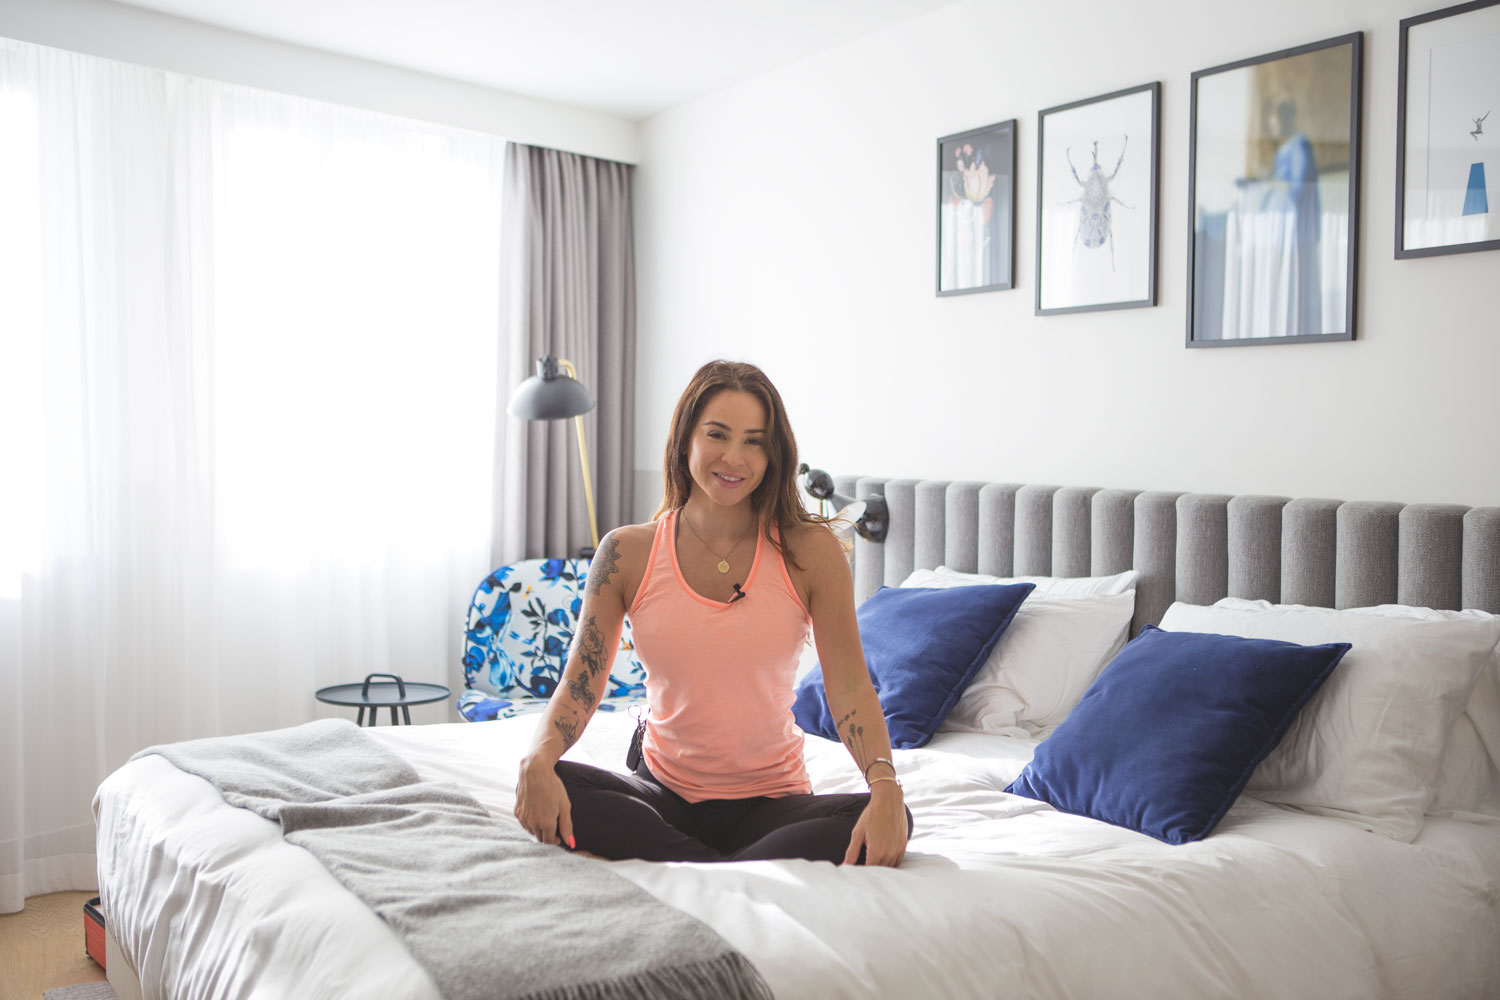 Relaxing Yoga in Bed video